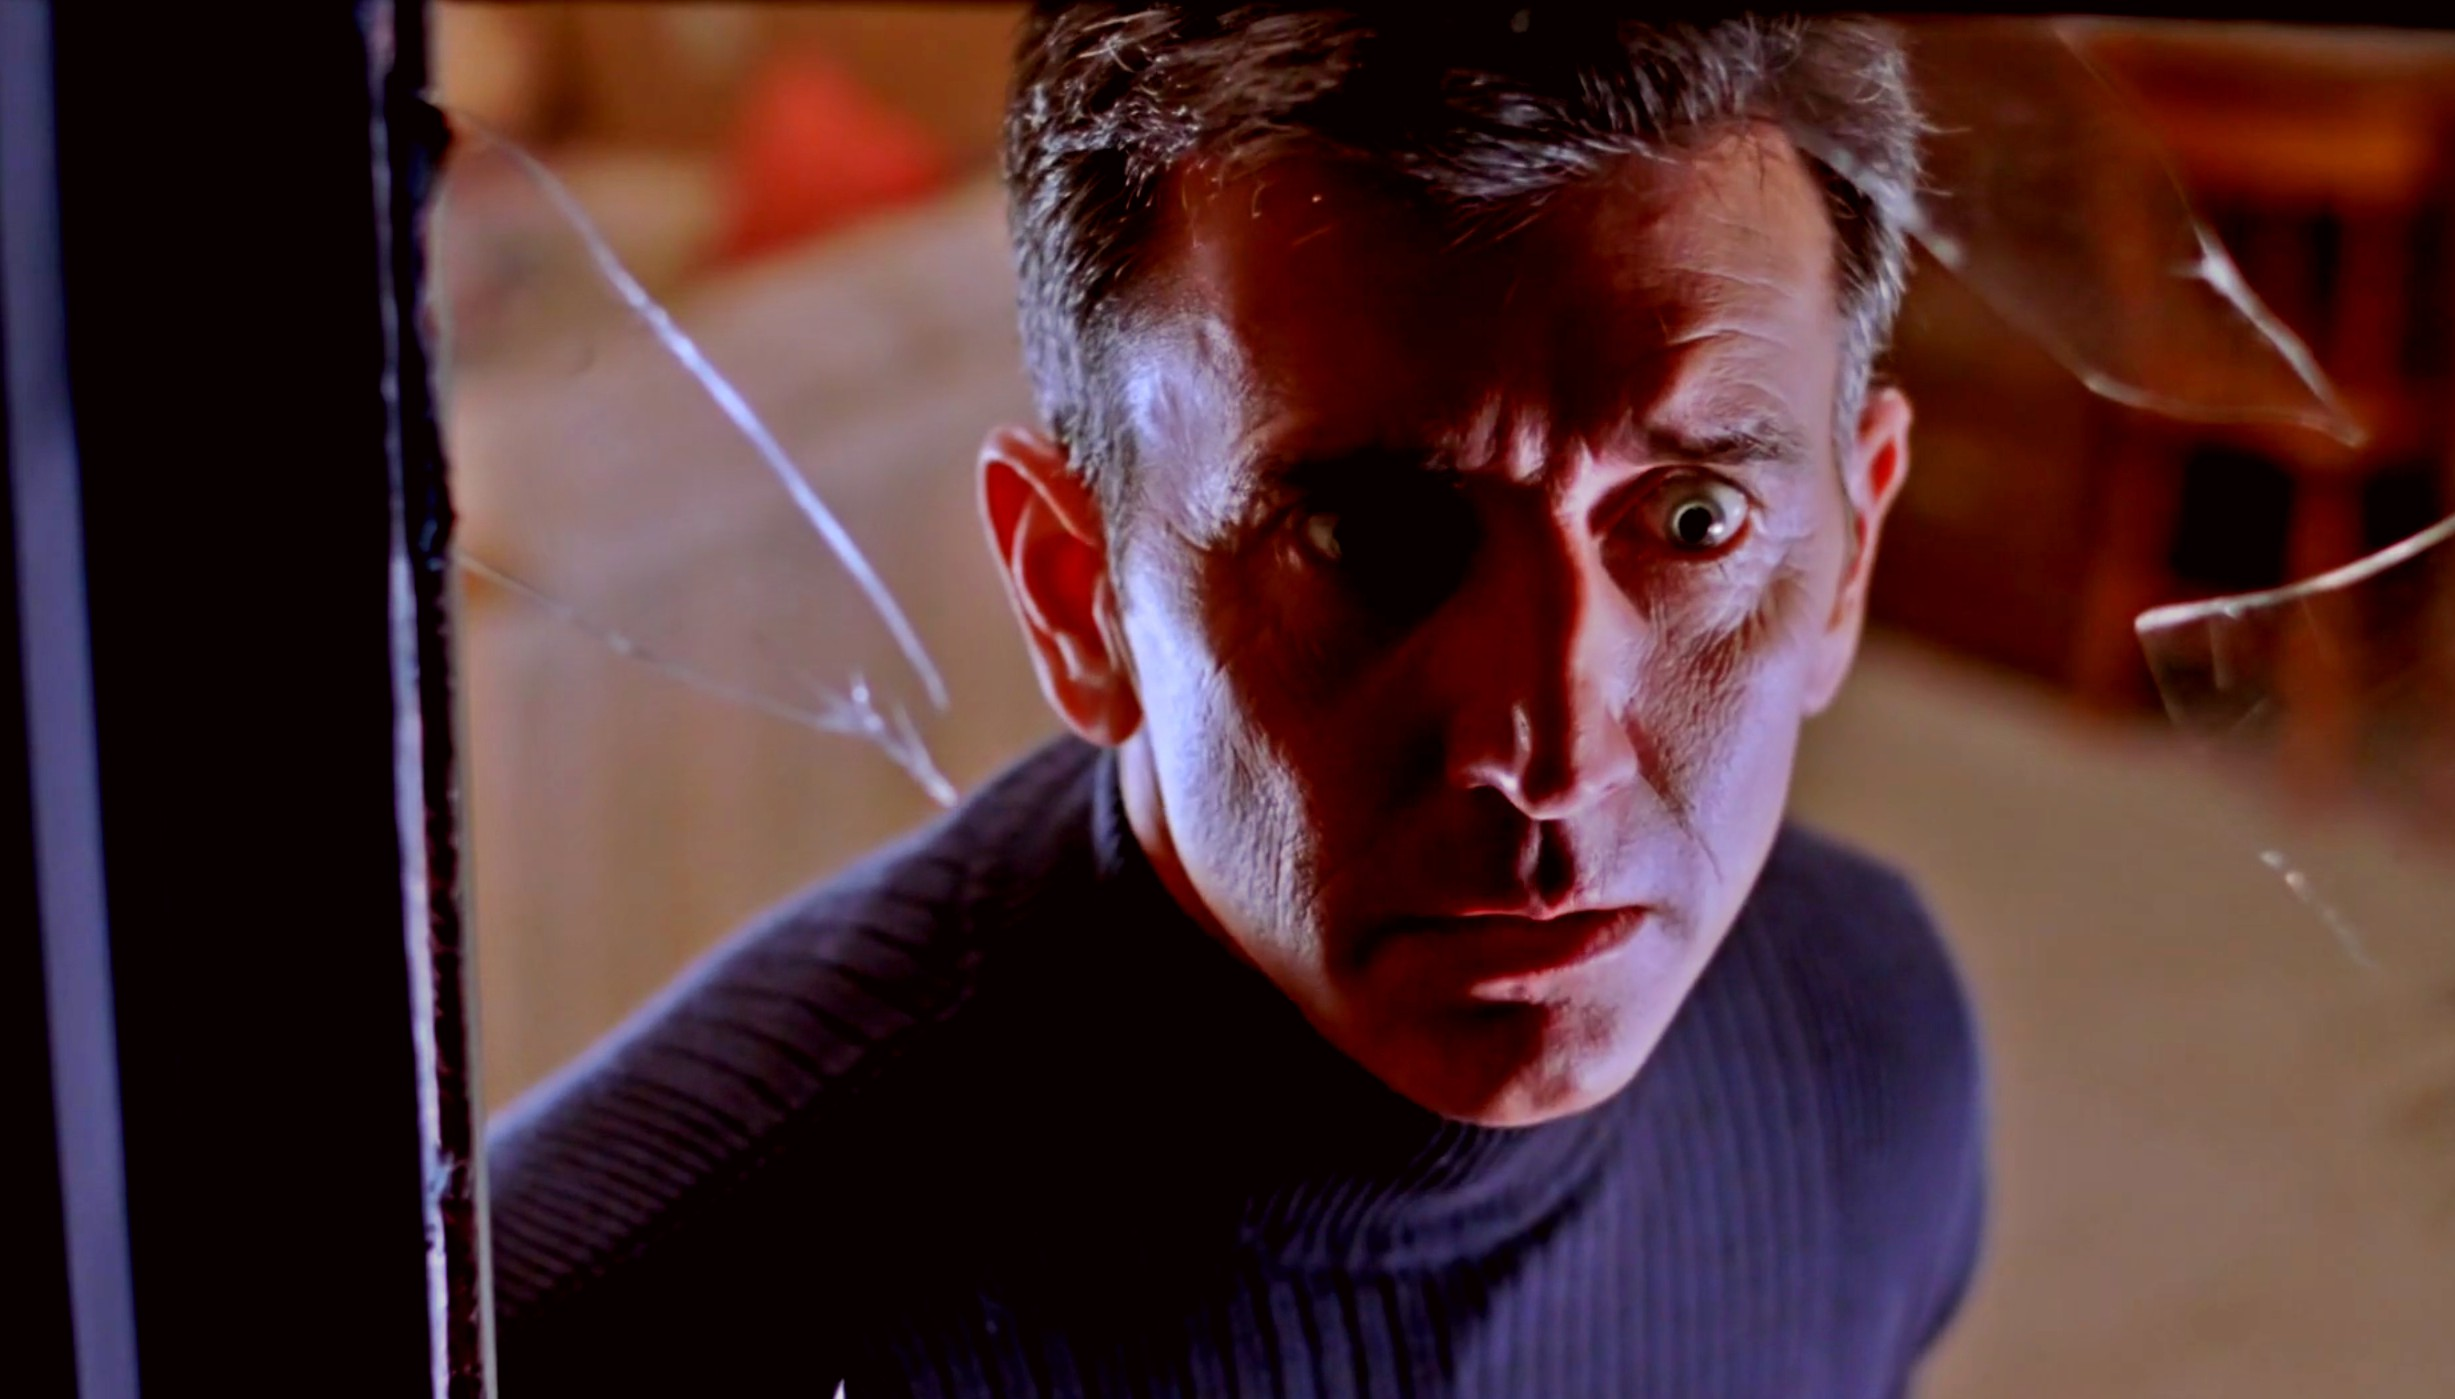 Matt McCoy in Abominable (2006)